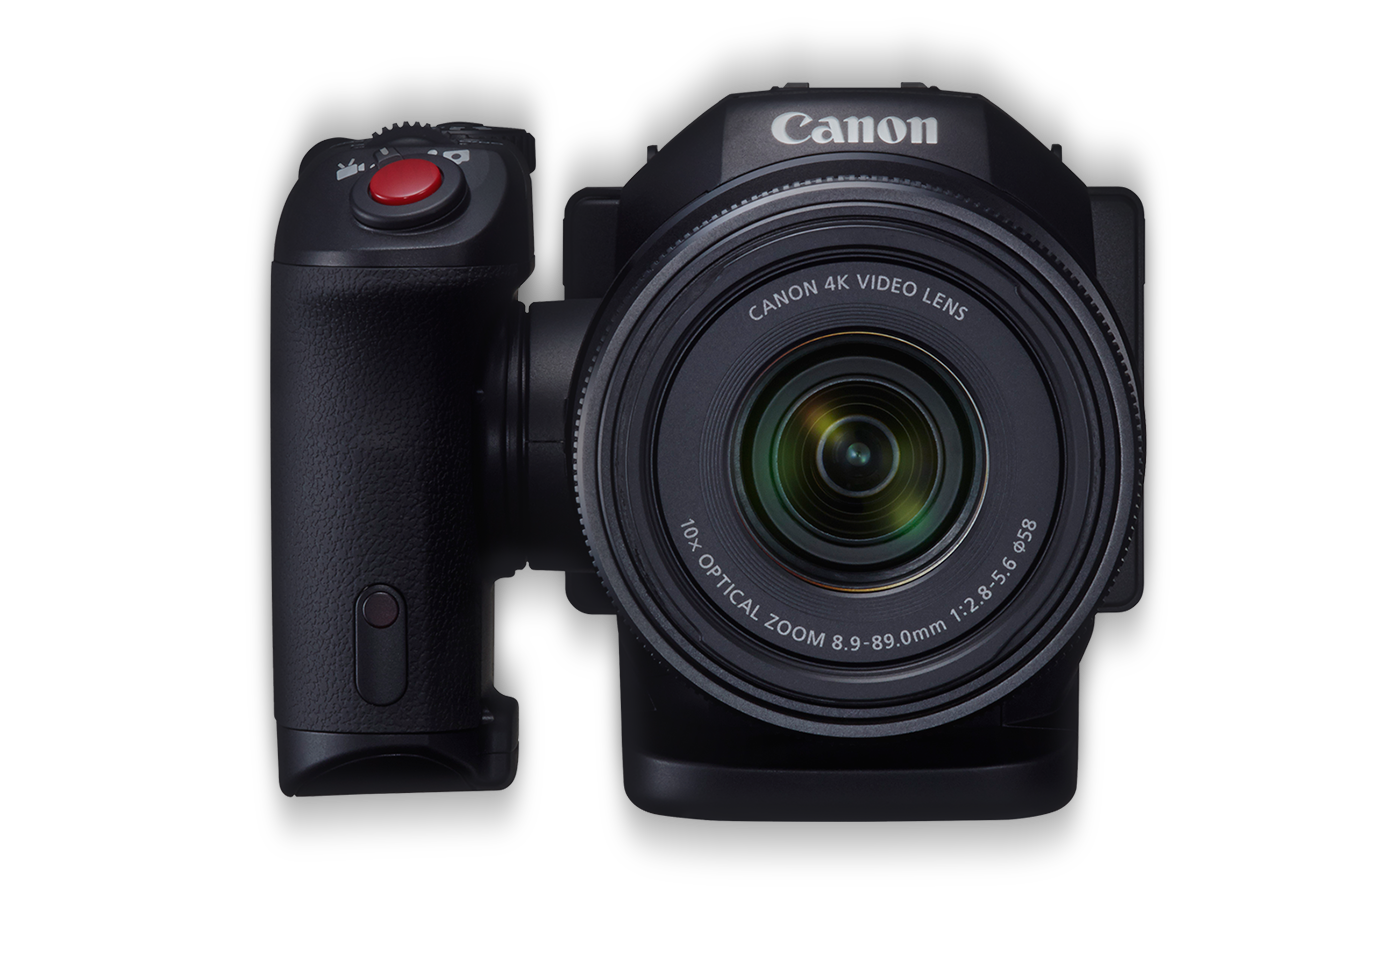 Canon XC10 compact video and stills camera